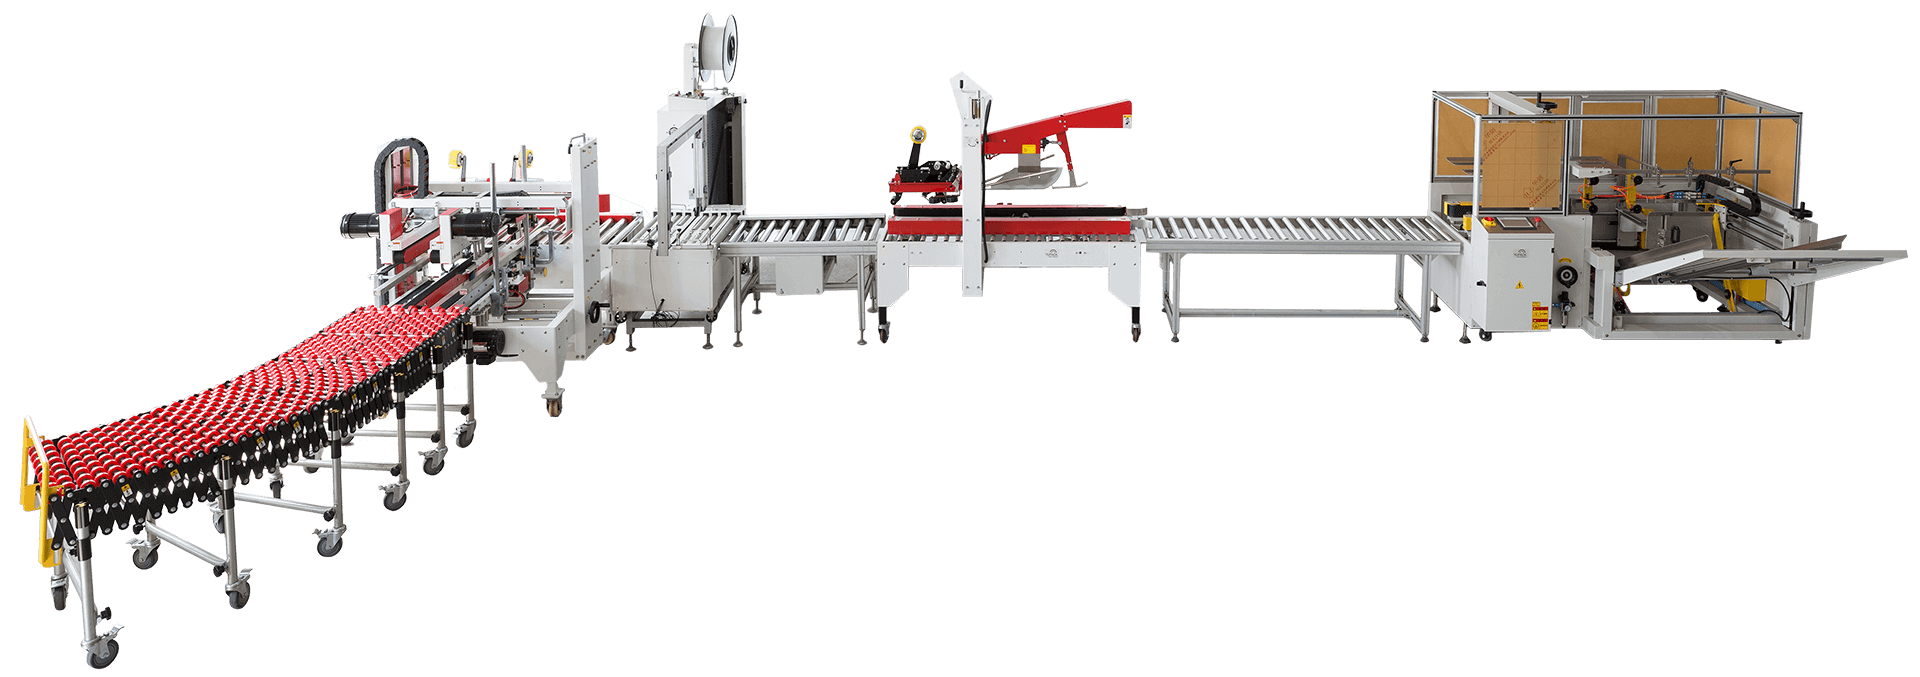 Carton-erector-H-type-carton-sealer-and-automatic-strapping-packing-line